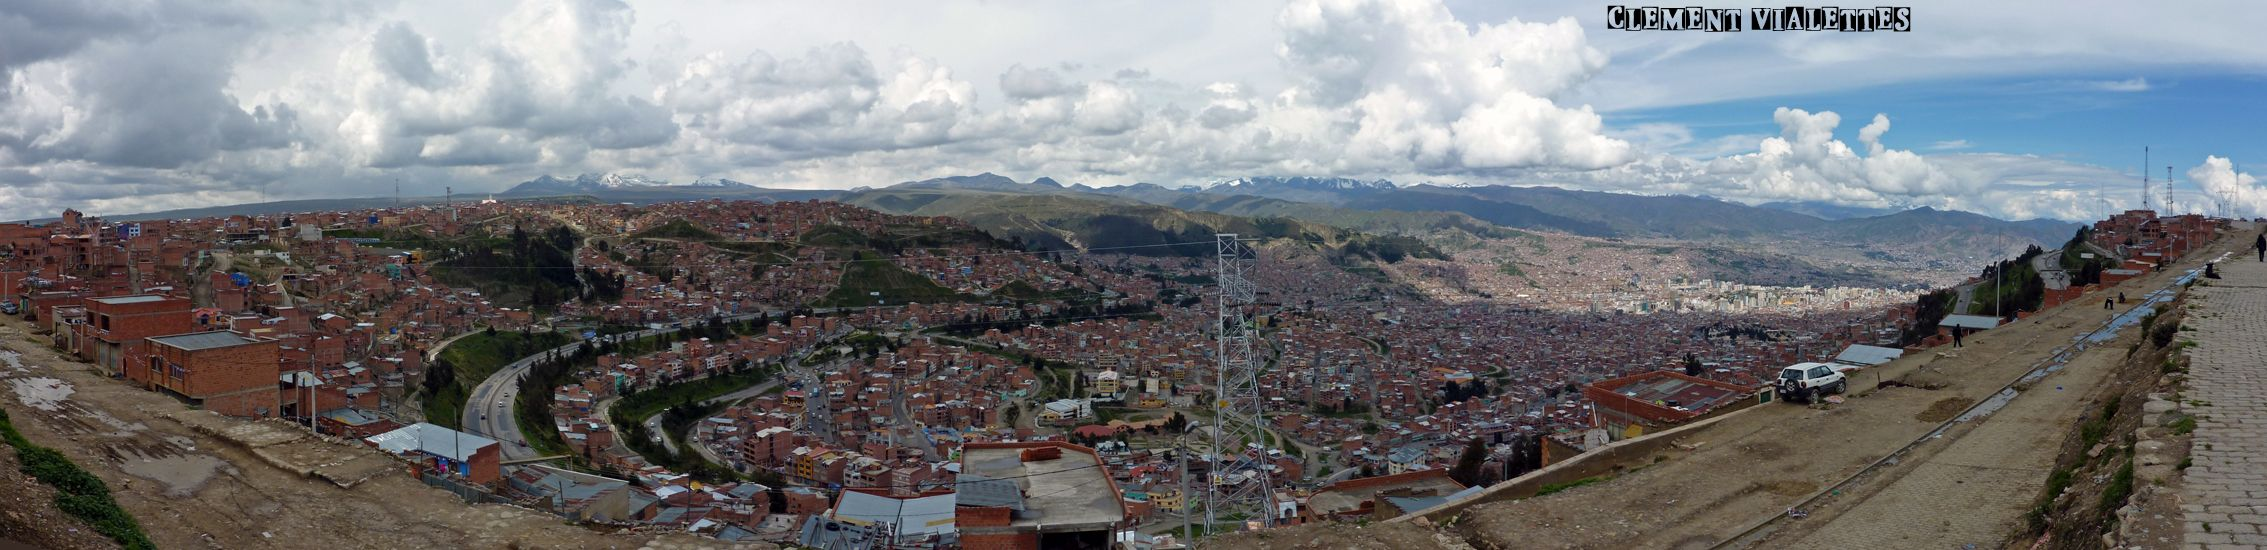 bolivie la paz panoramique